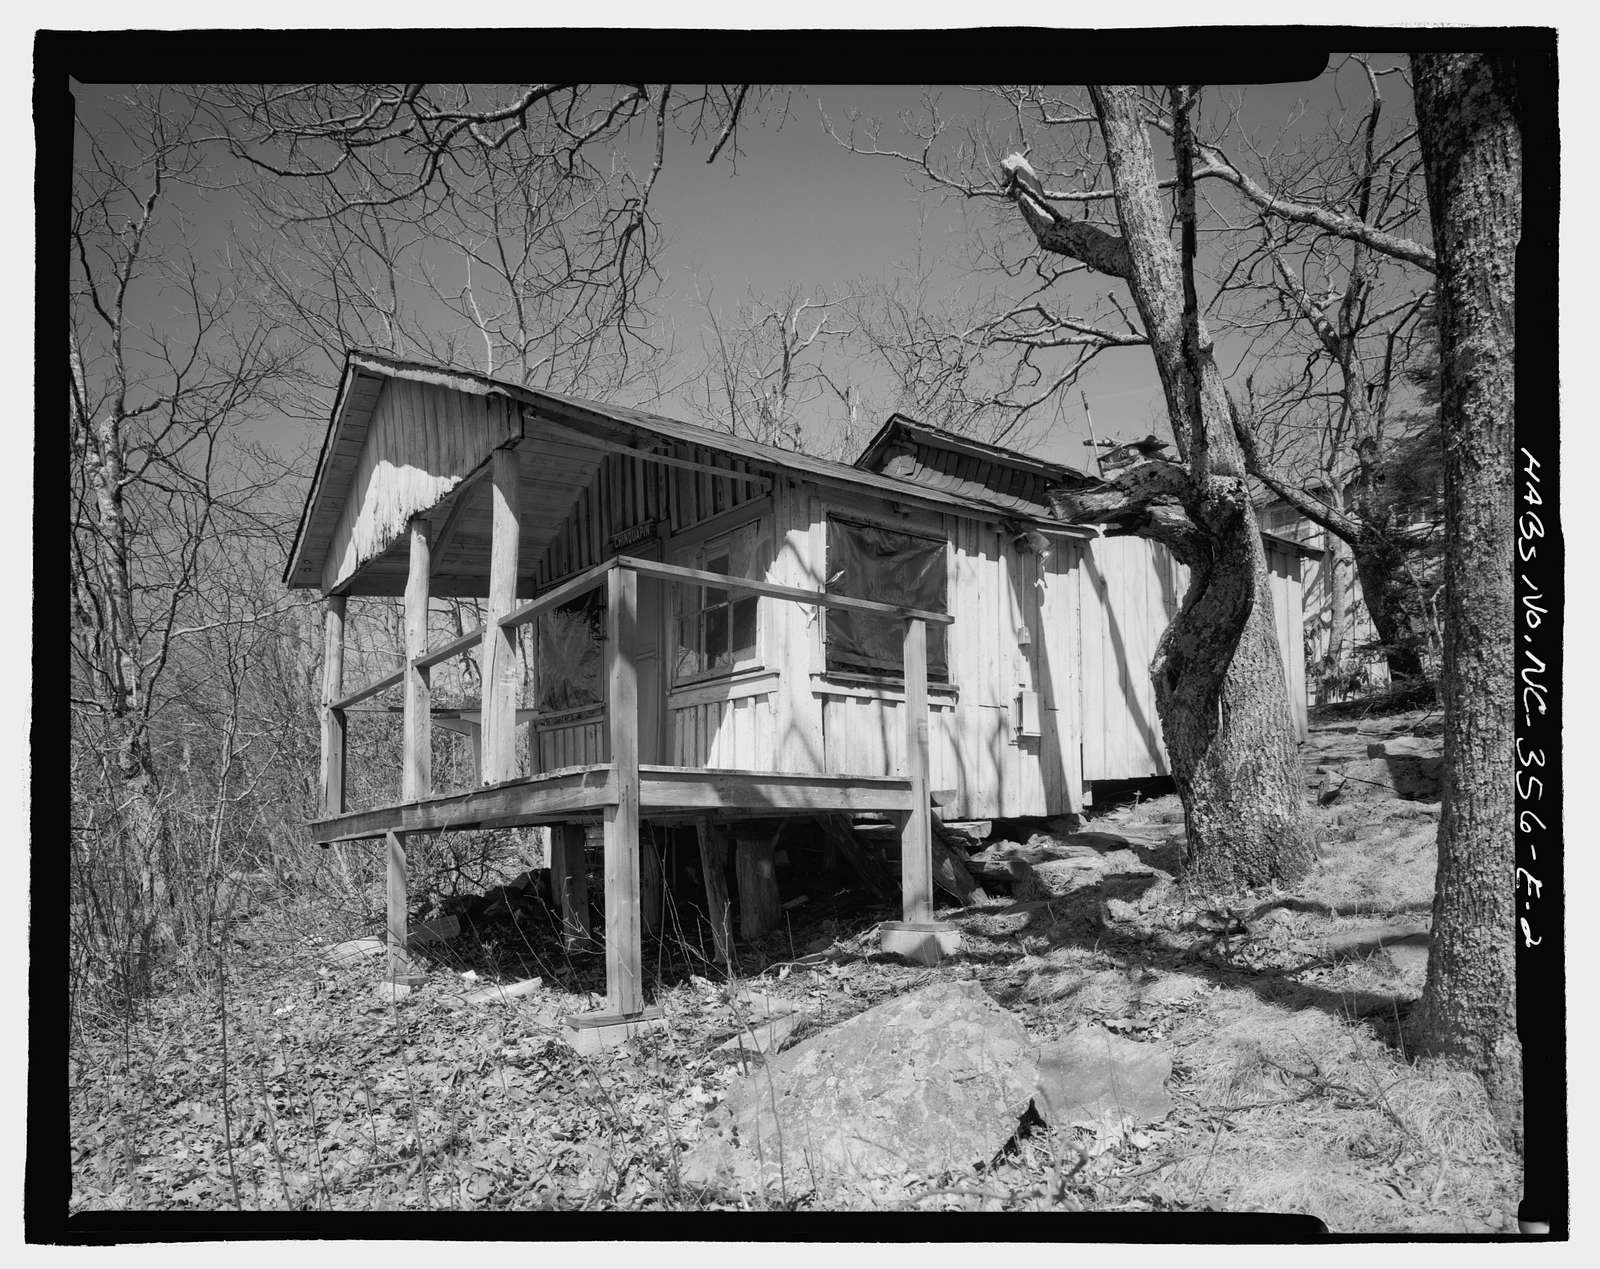 Pisgah National Forest Inn, Chinquapin Cabin, Blue Ridge Parkway Milepost 408.6, Asheville, Buncombe County, NC